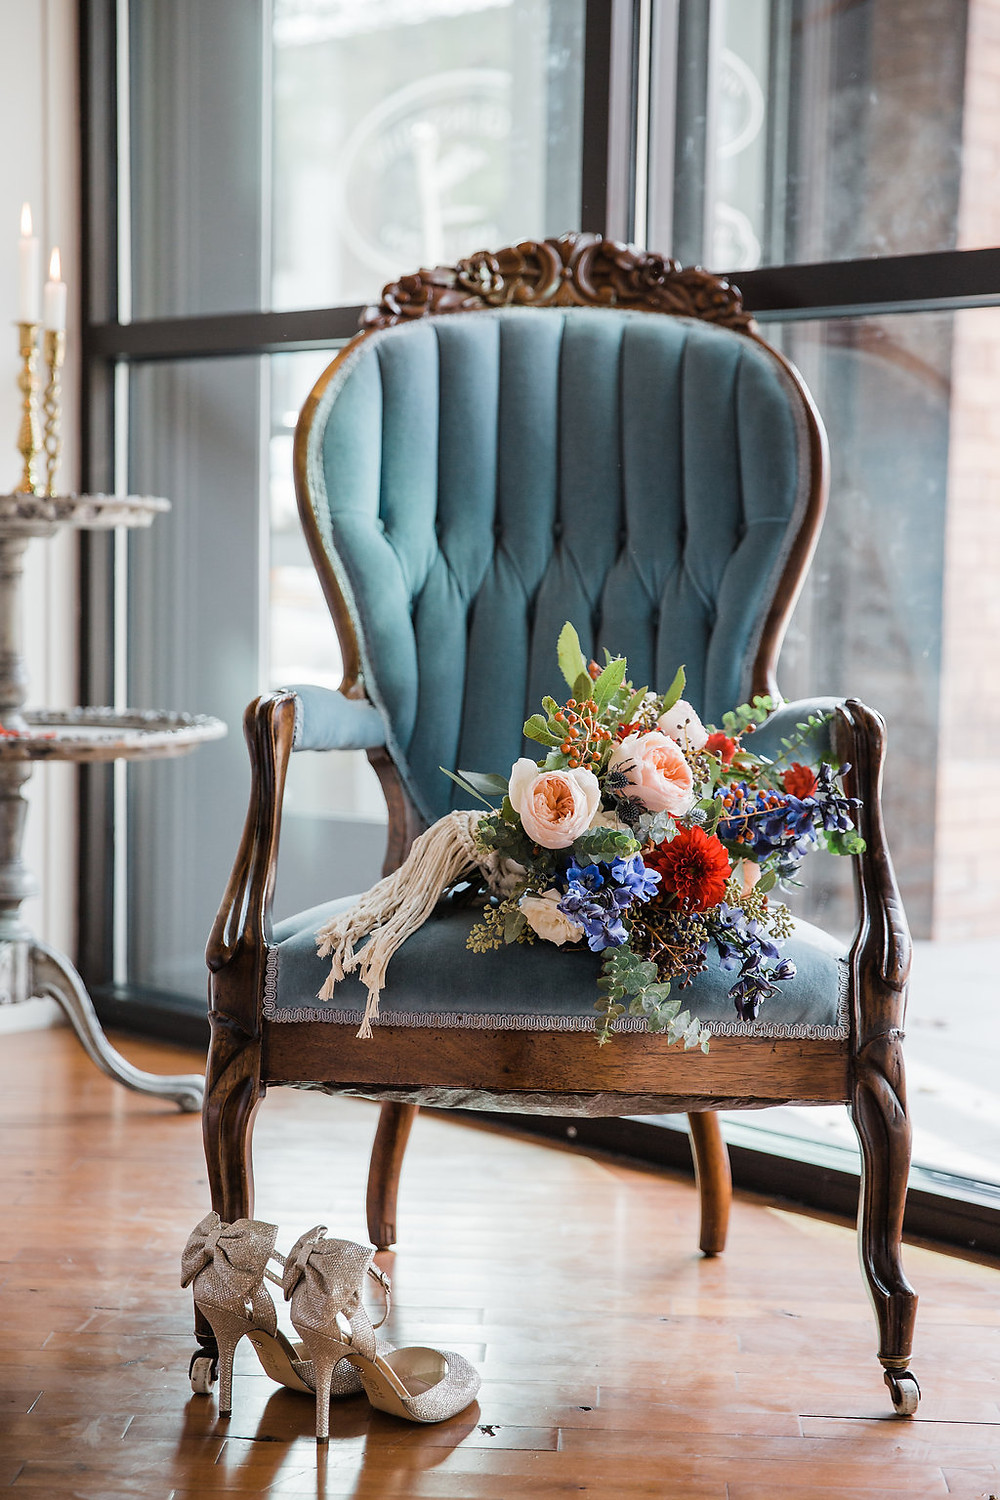 The vintage, wood-trimmed Carolina blue chair was perfect for detail photos of the floral bouquet.